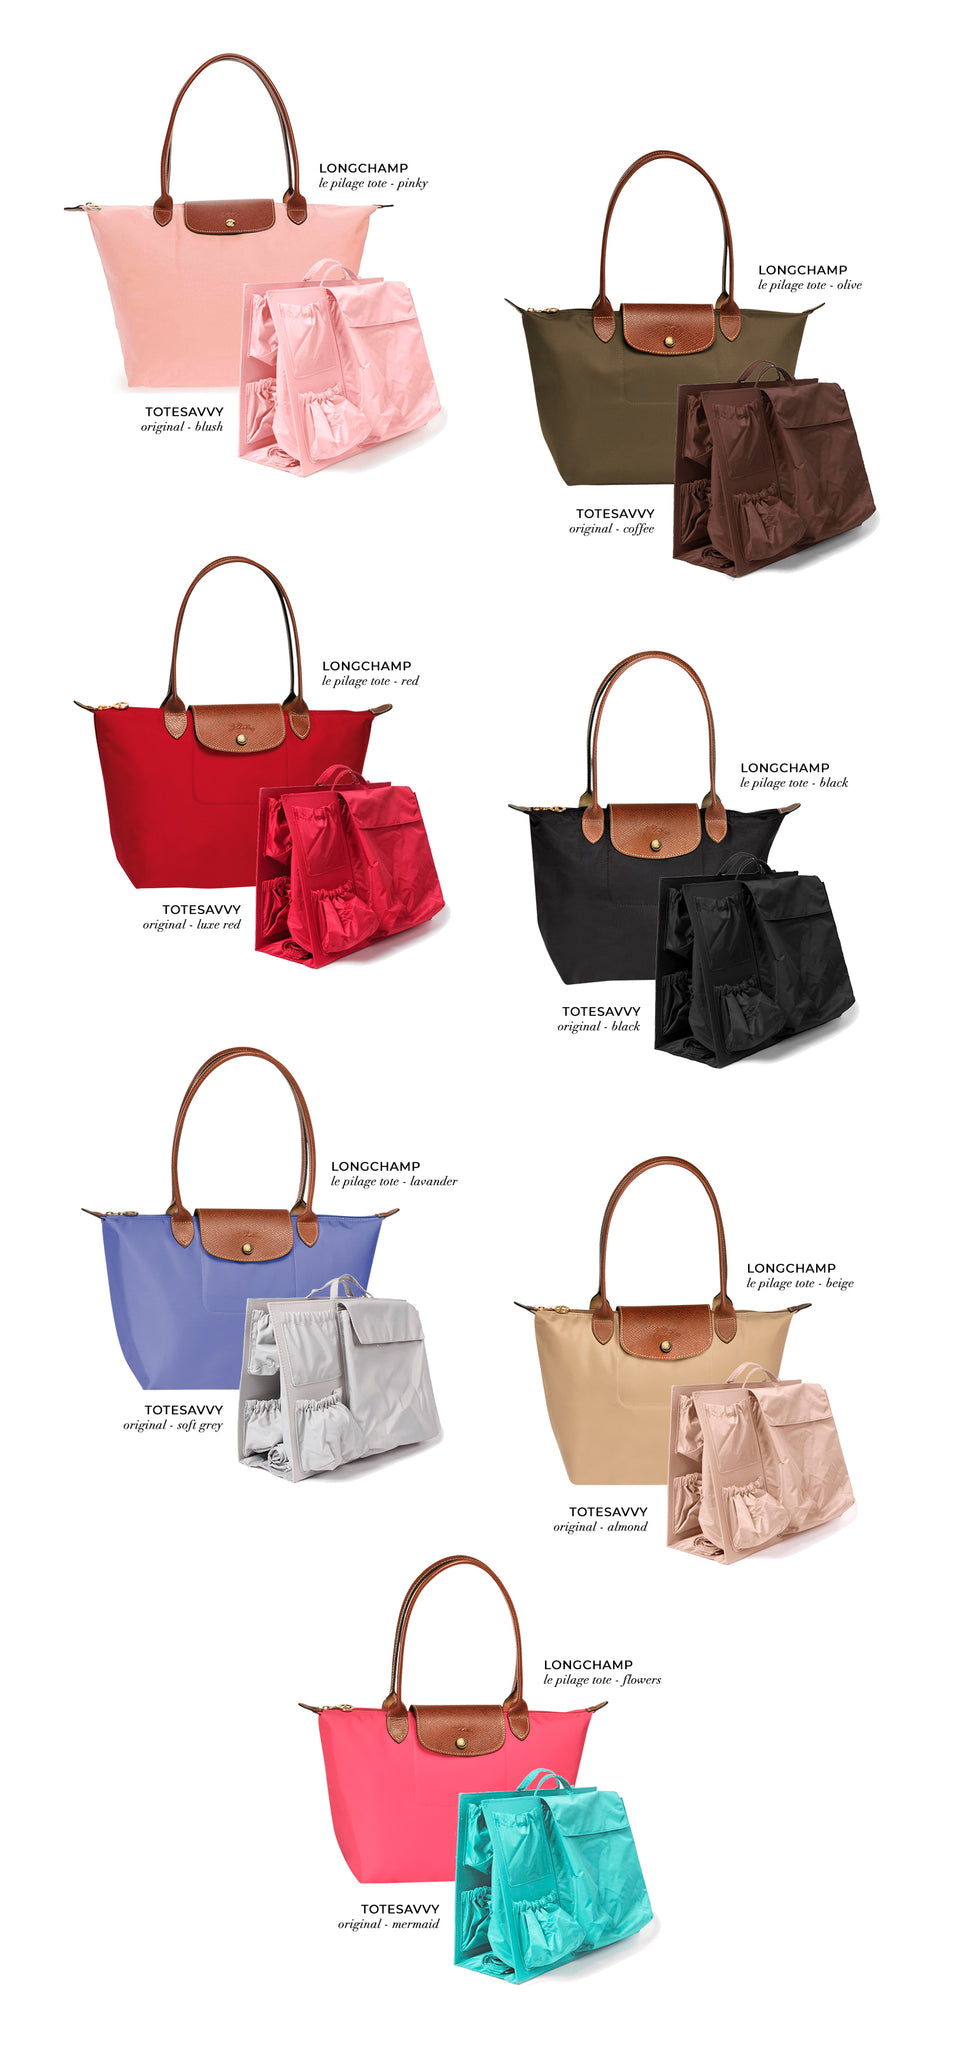 bbf7288e248 What color ToteSavvy is best for your Longchamp tote